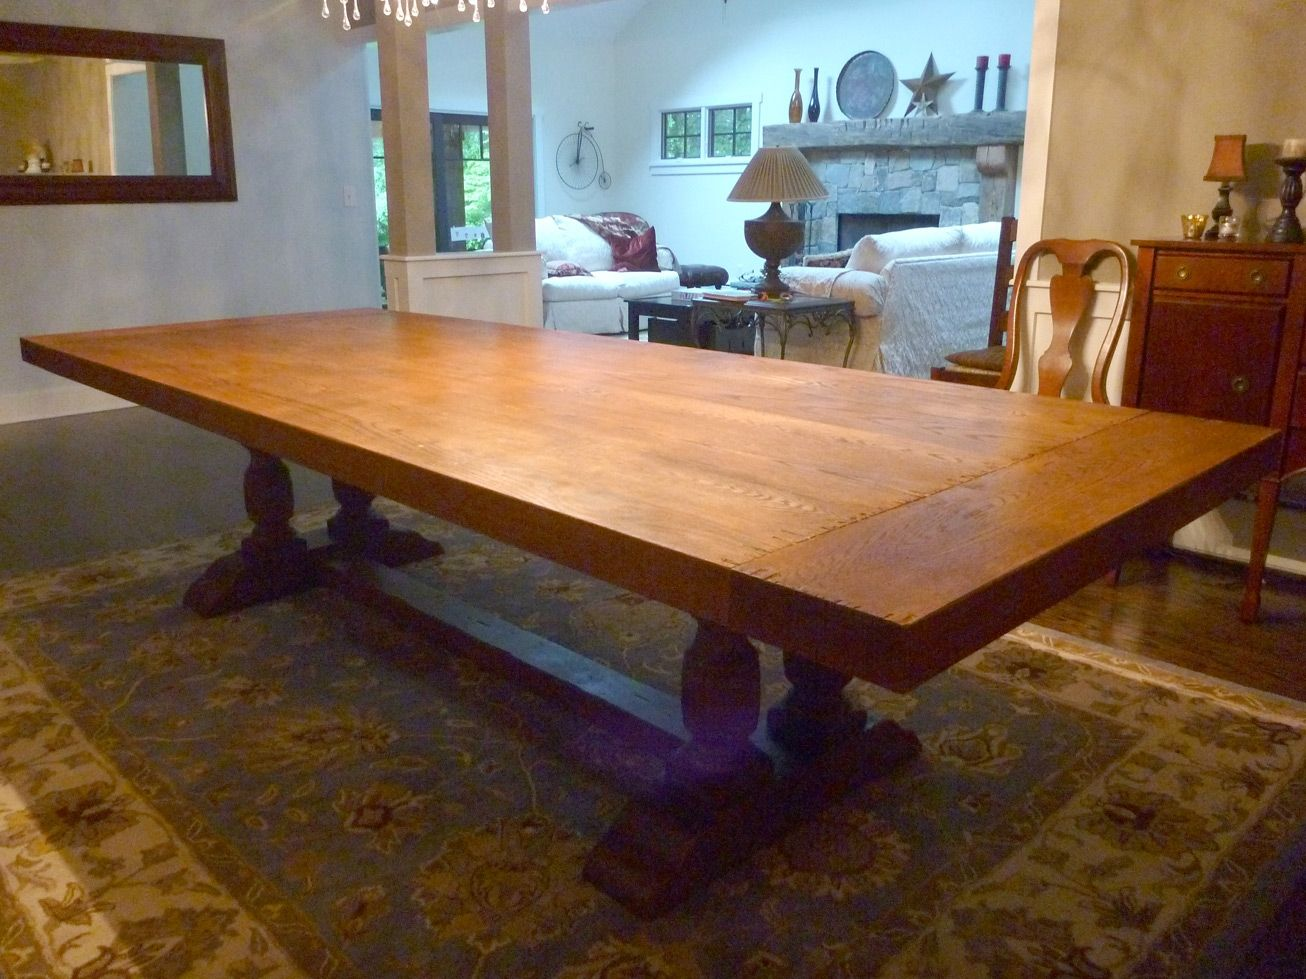 Hand crafted dining room table top by ajc woodworking for Images of dining room tables